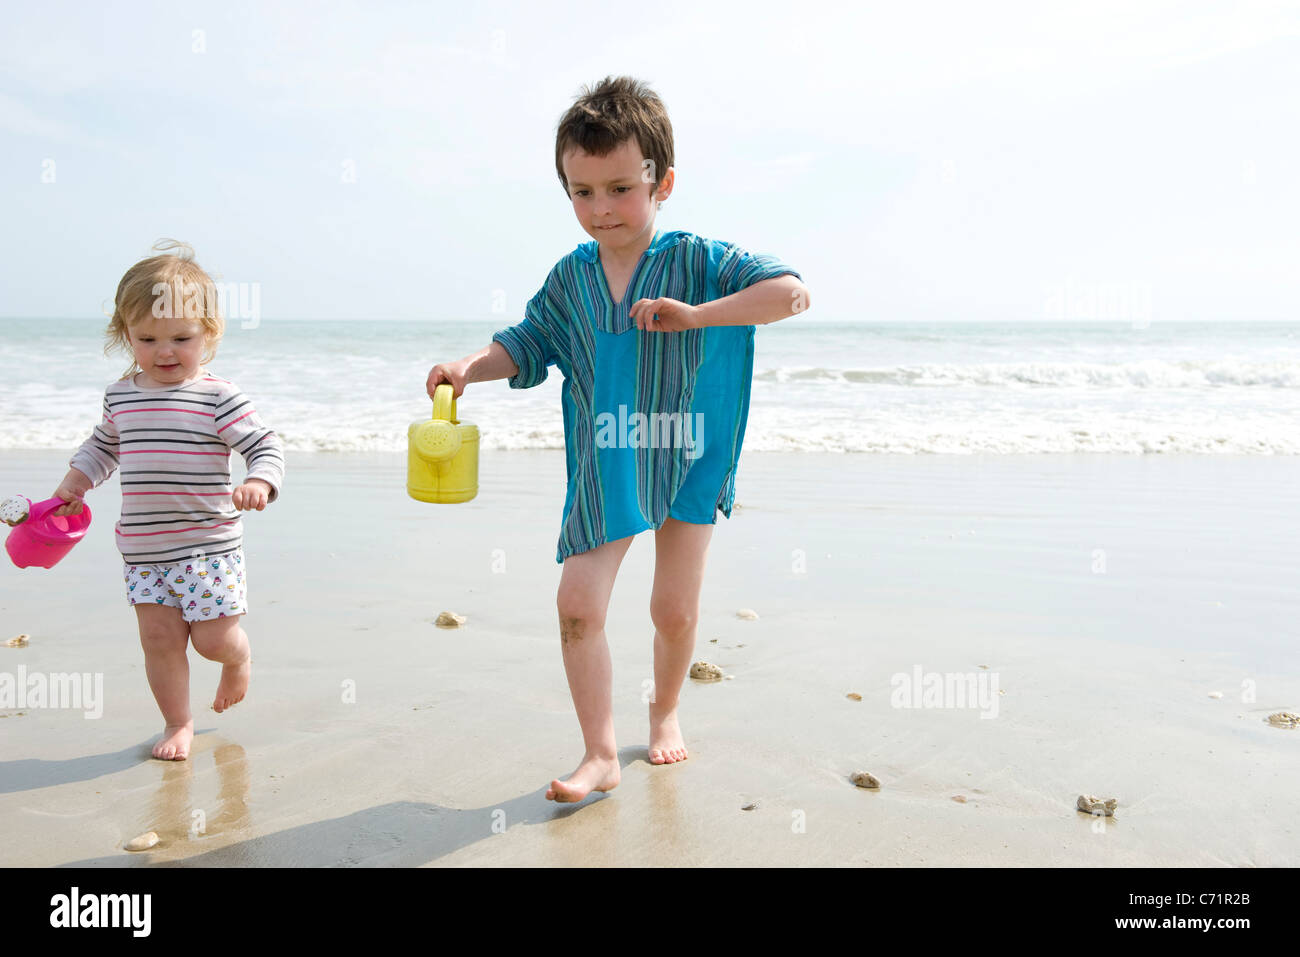 Young siblings walking on wet sand at the beach - Stock Image